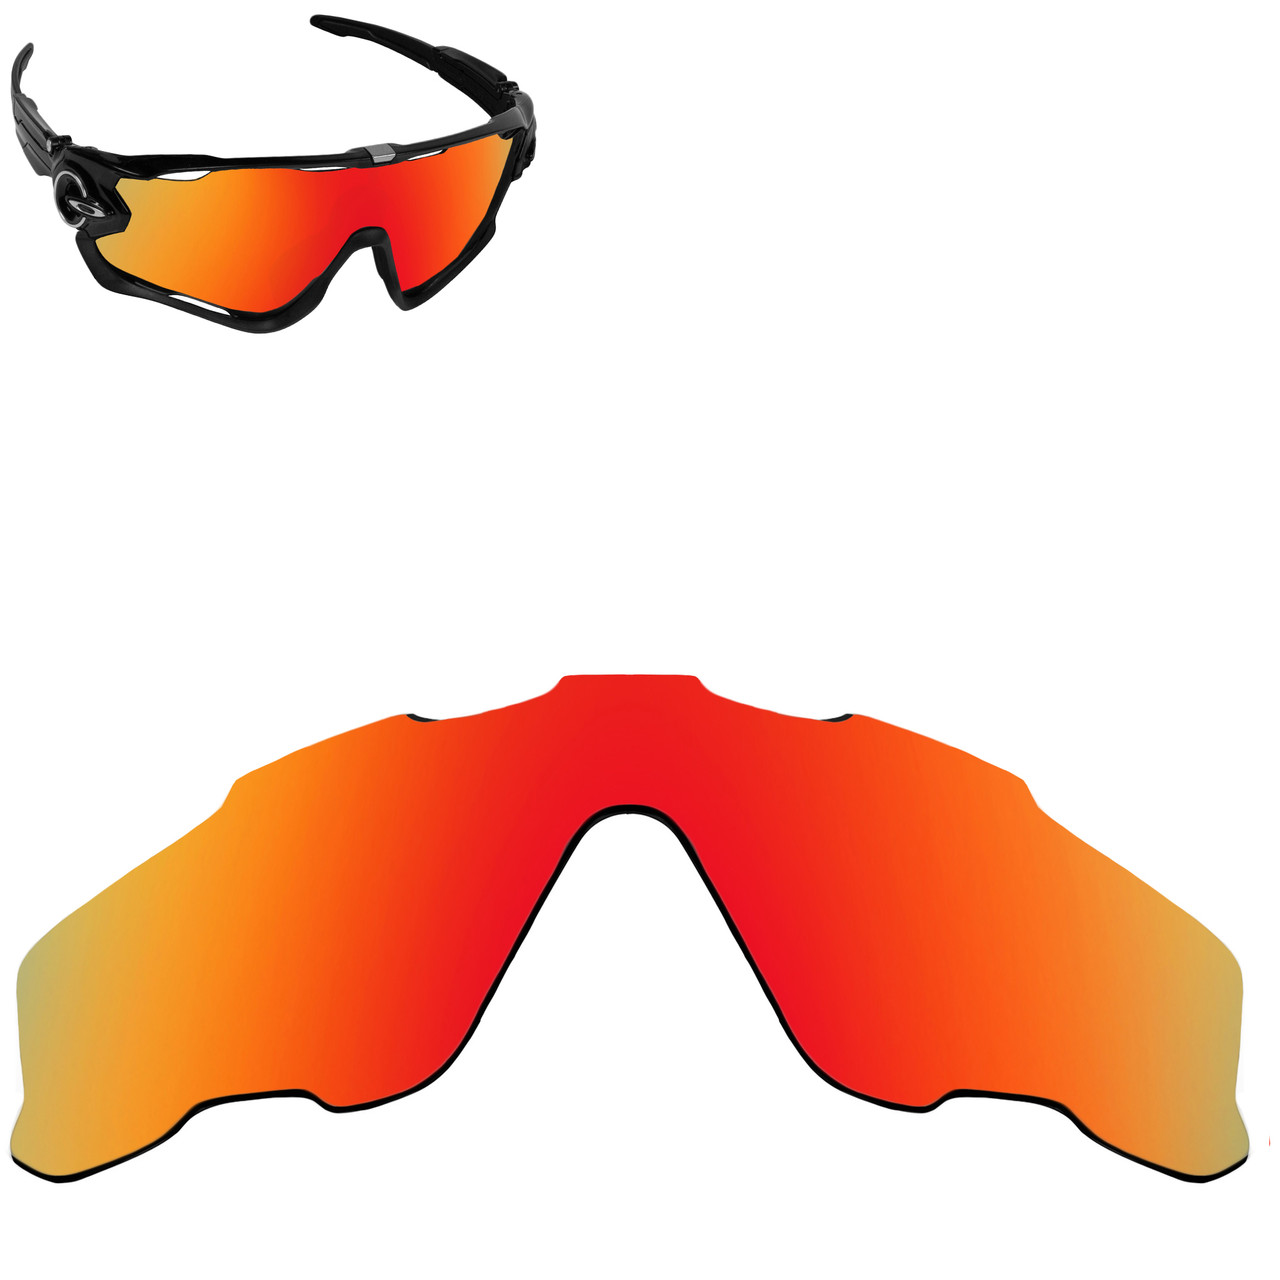 5979e6aa525 Fits Oakley Jawbreaker - Seek Optics